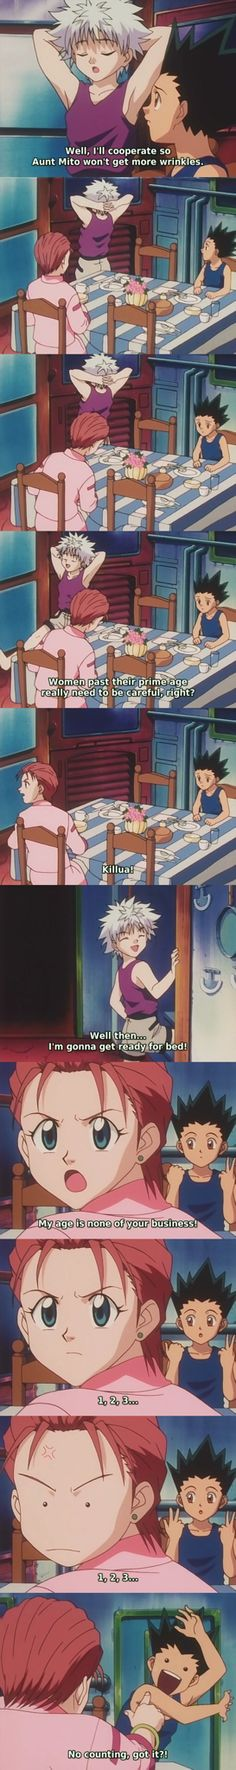 Asdfghjklim laughing so hard right now omg. || Tags: [ #Killua | #Gon | #Mito-san ]